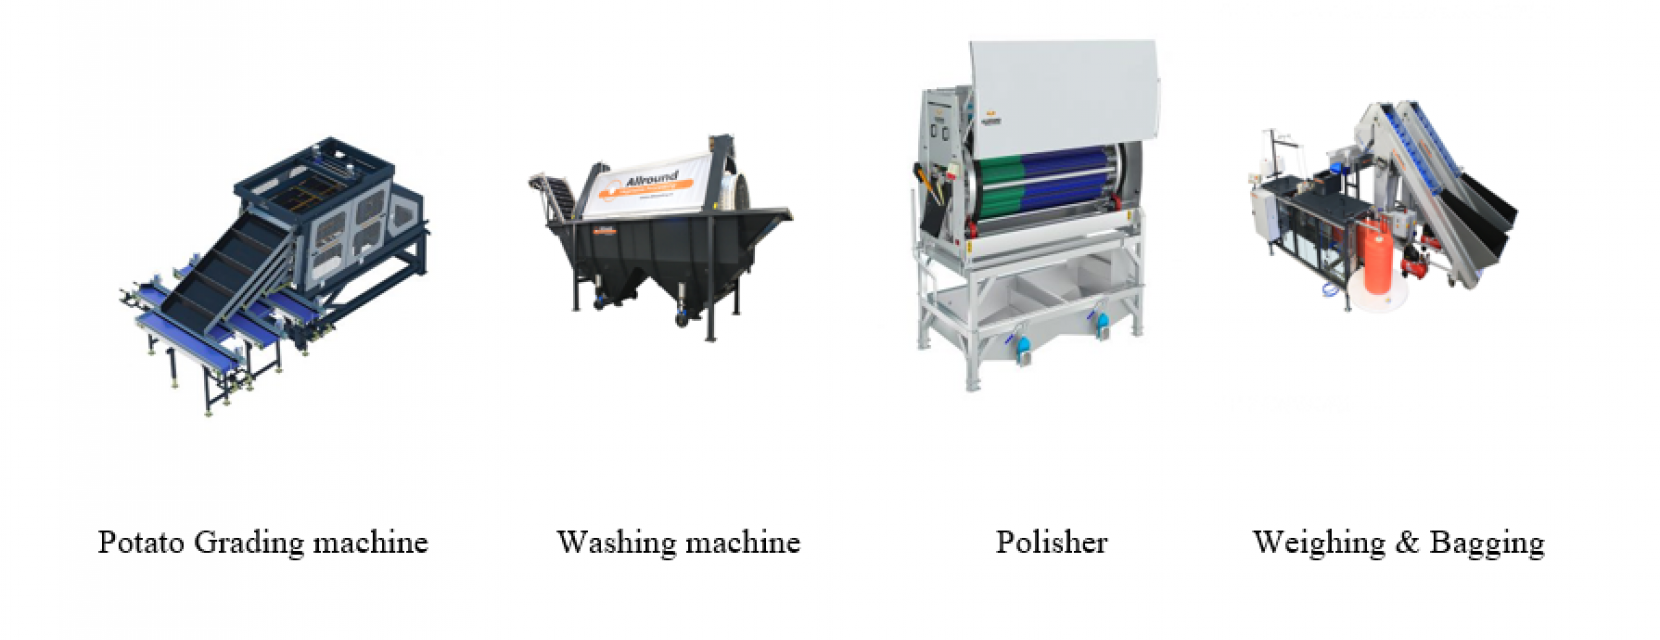 Vegetable processing Line. (Potato grading, washing, drying & more)